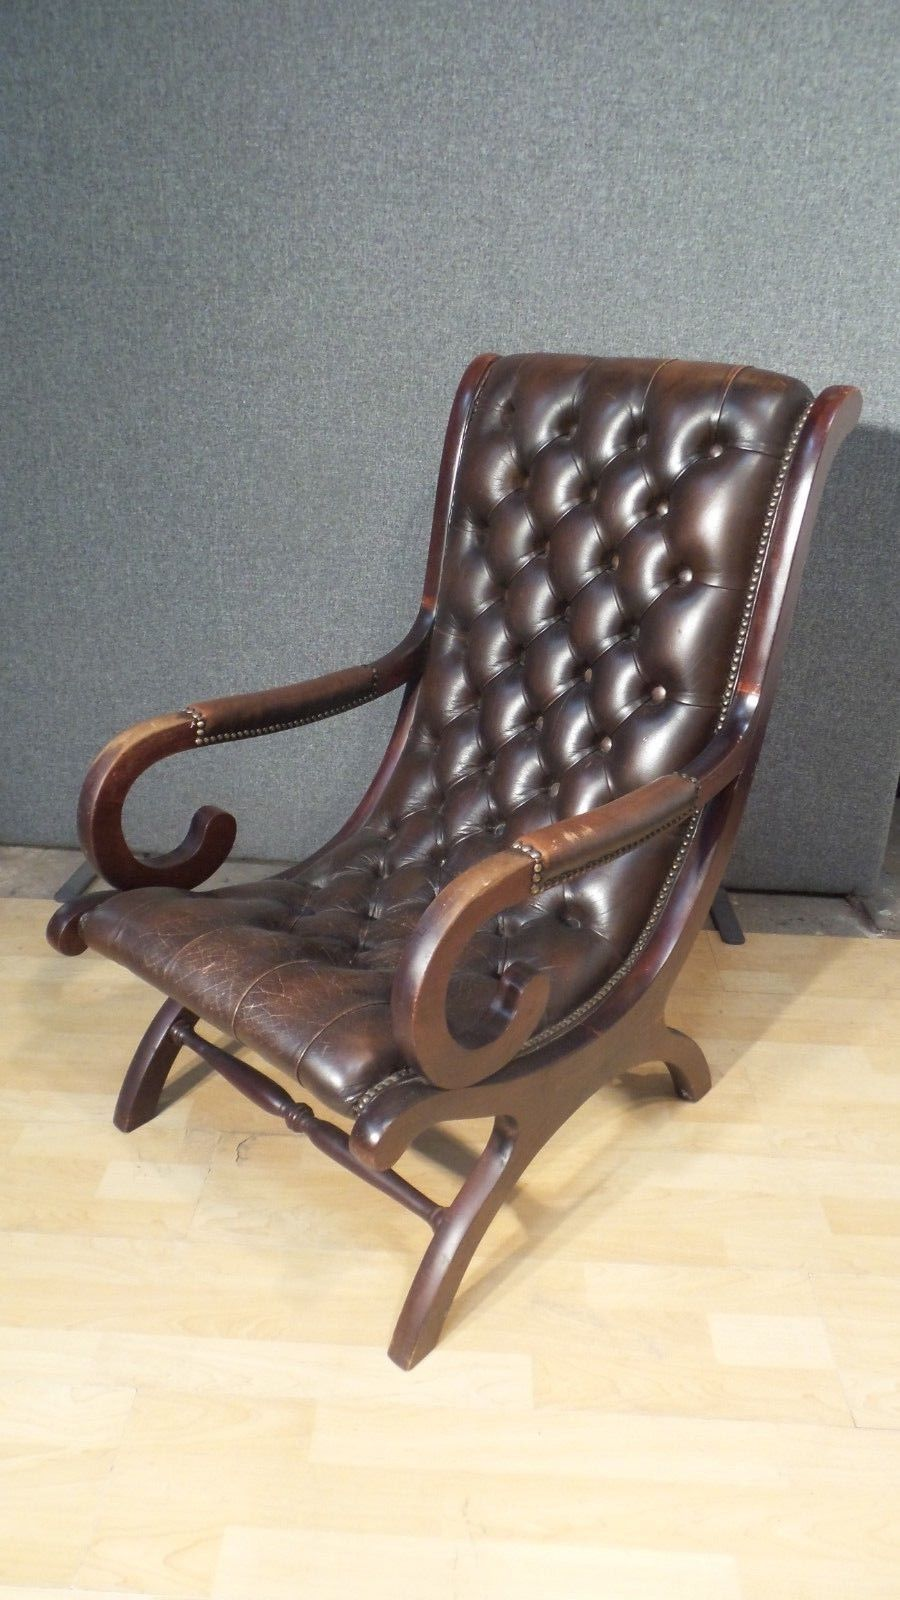 Fine Chesterfield Leather Slipper Chair In Conker Chestnut Brown Vintage Antique Creativecarmelina Interior Chair Design Creativecarmelinacom